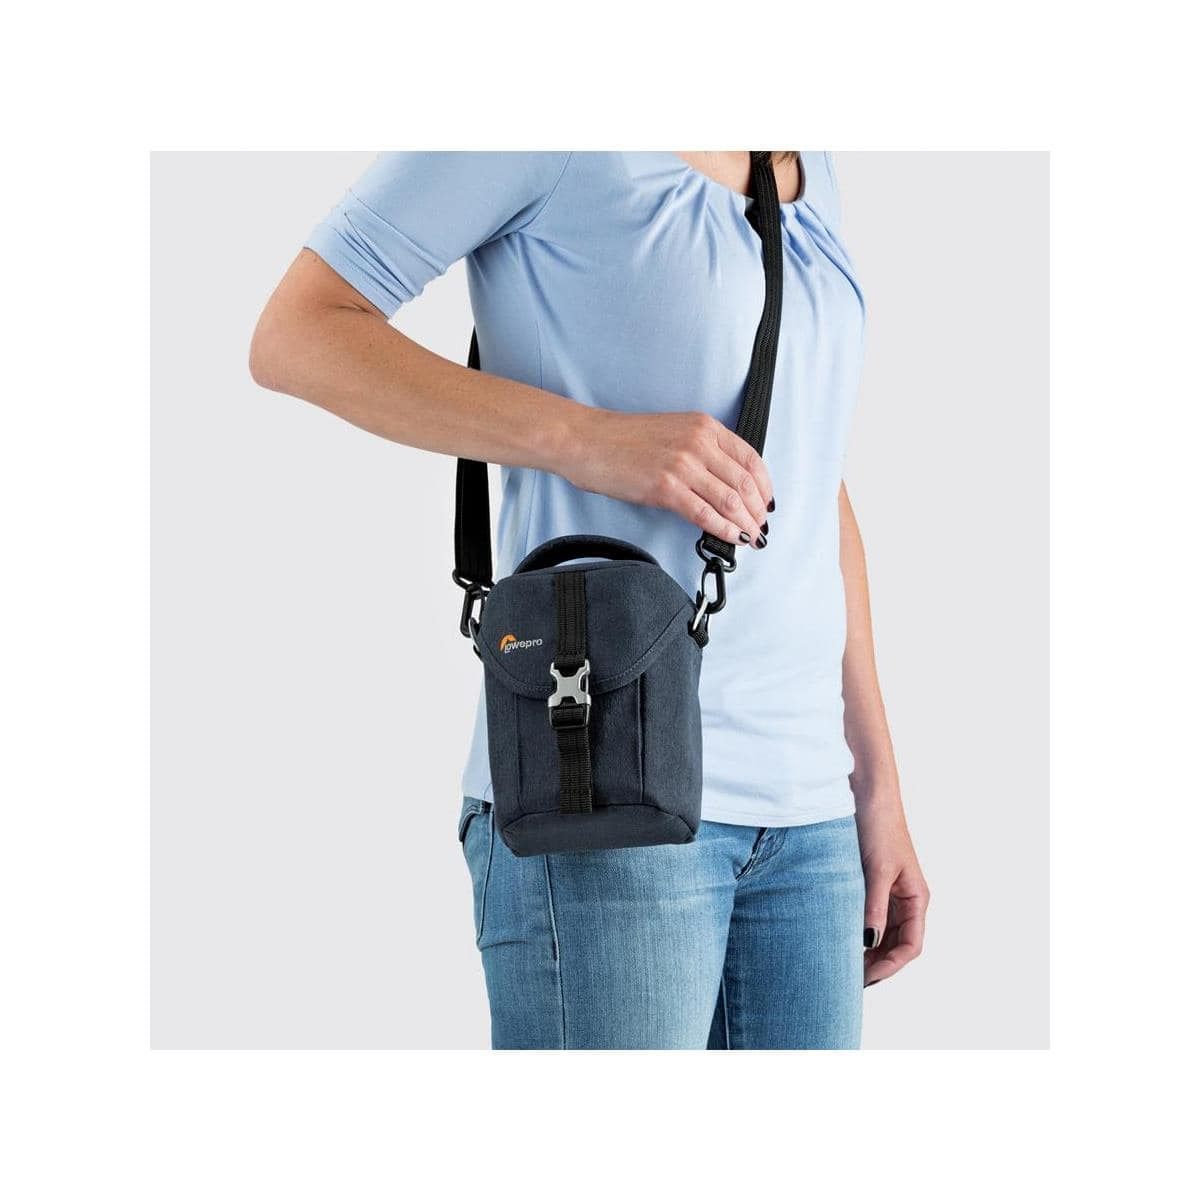 Lowepro Scout SH 100 Shoulder Bag for Cameras  $8 + Free Shipping